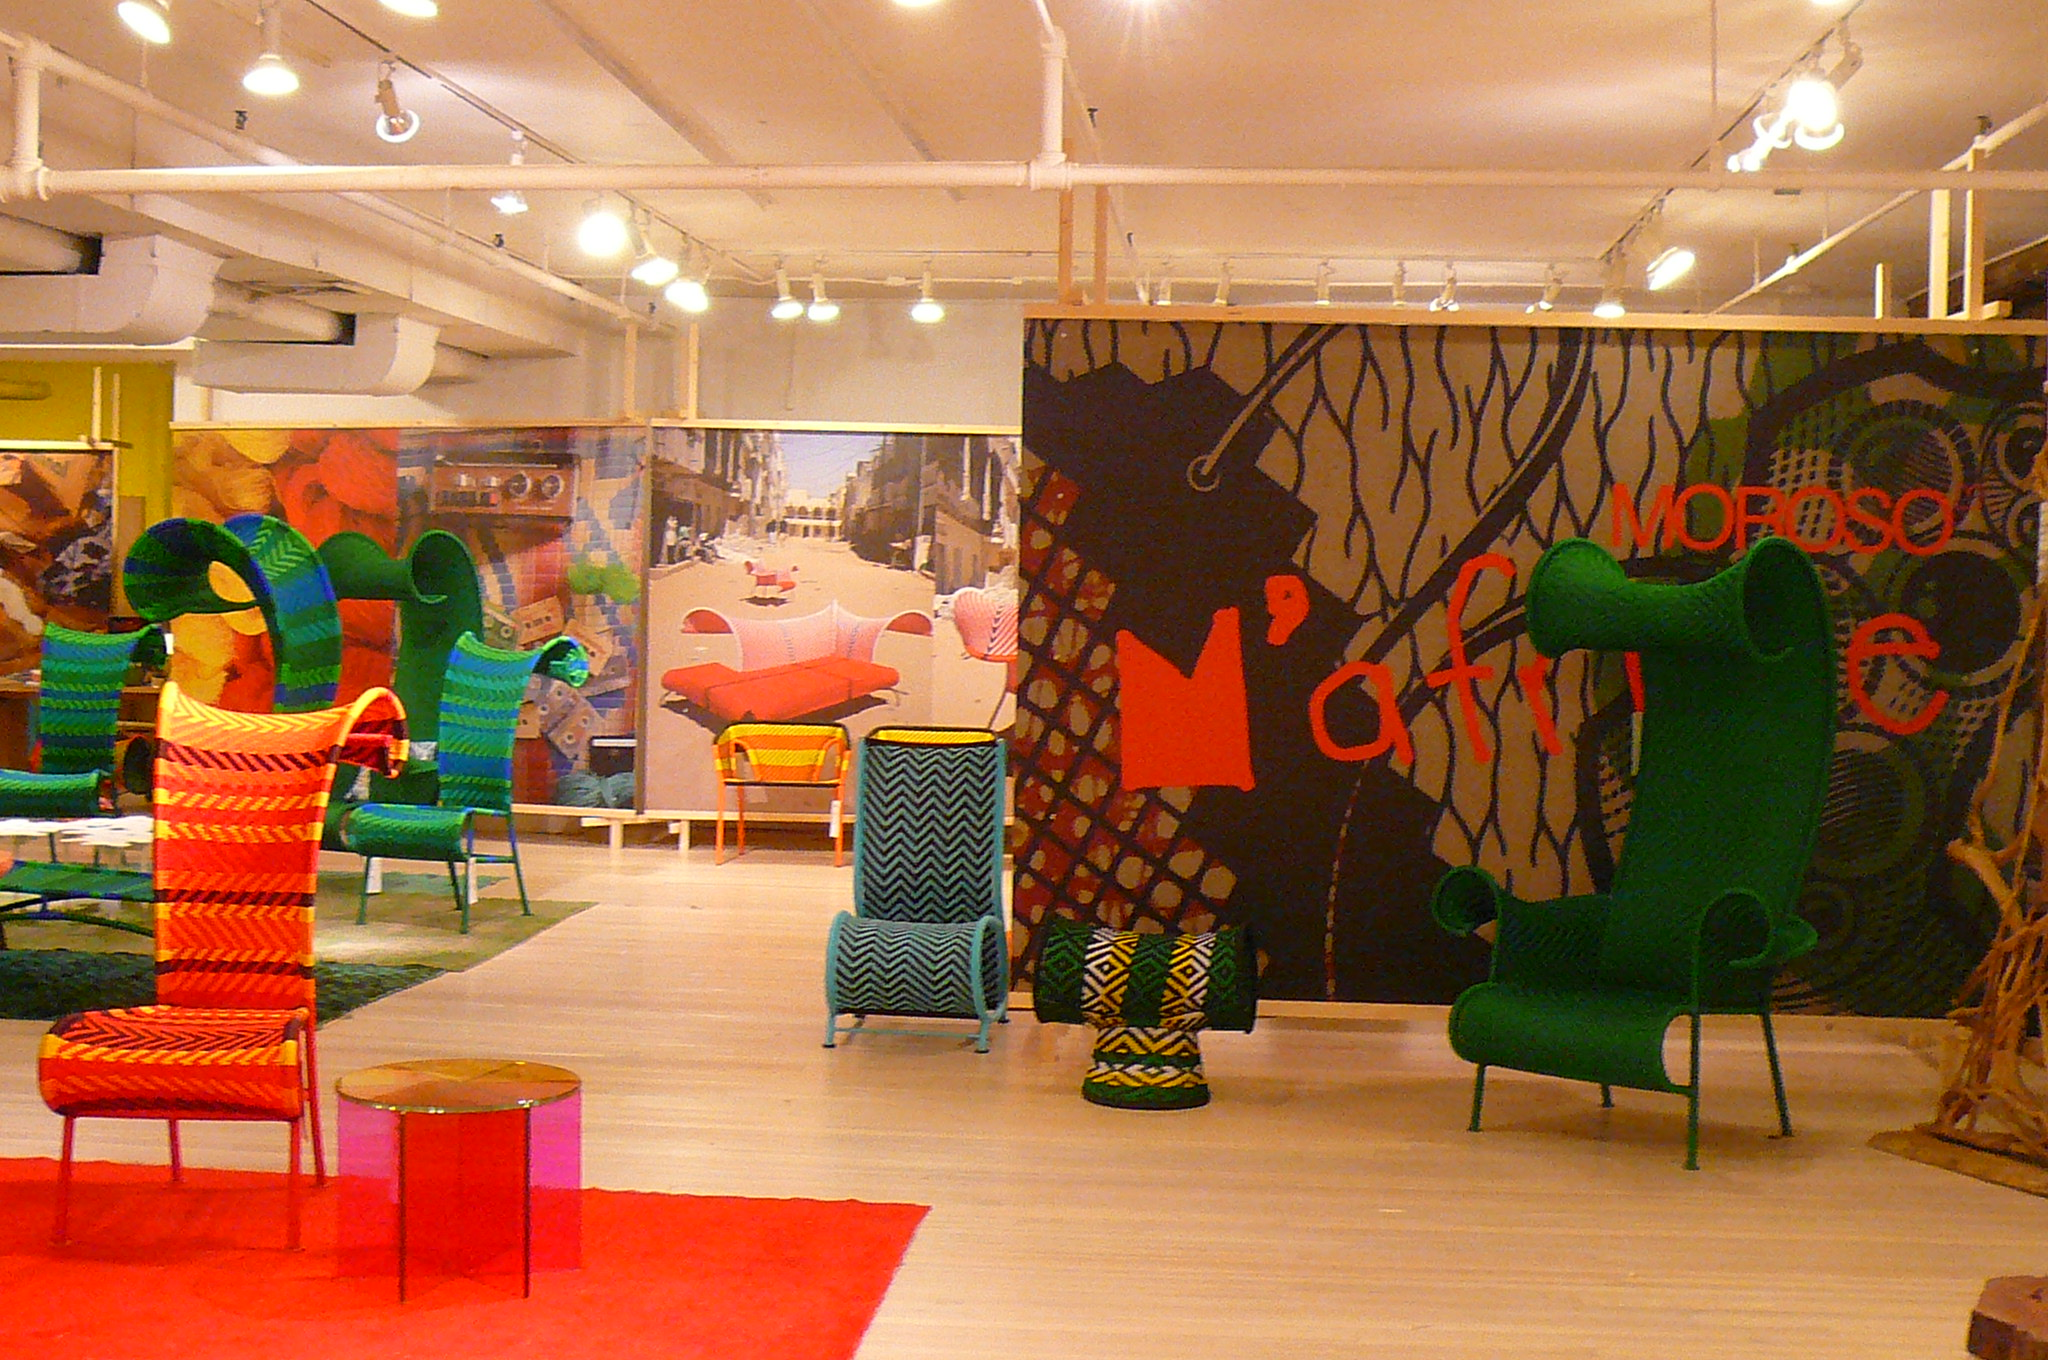 And here's the view facing the other direction—into Moroso's M'Afrique collection, with its colorful, Dr. Seuss-ian plastic-woven chairs.